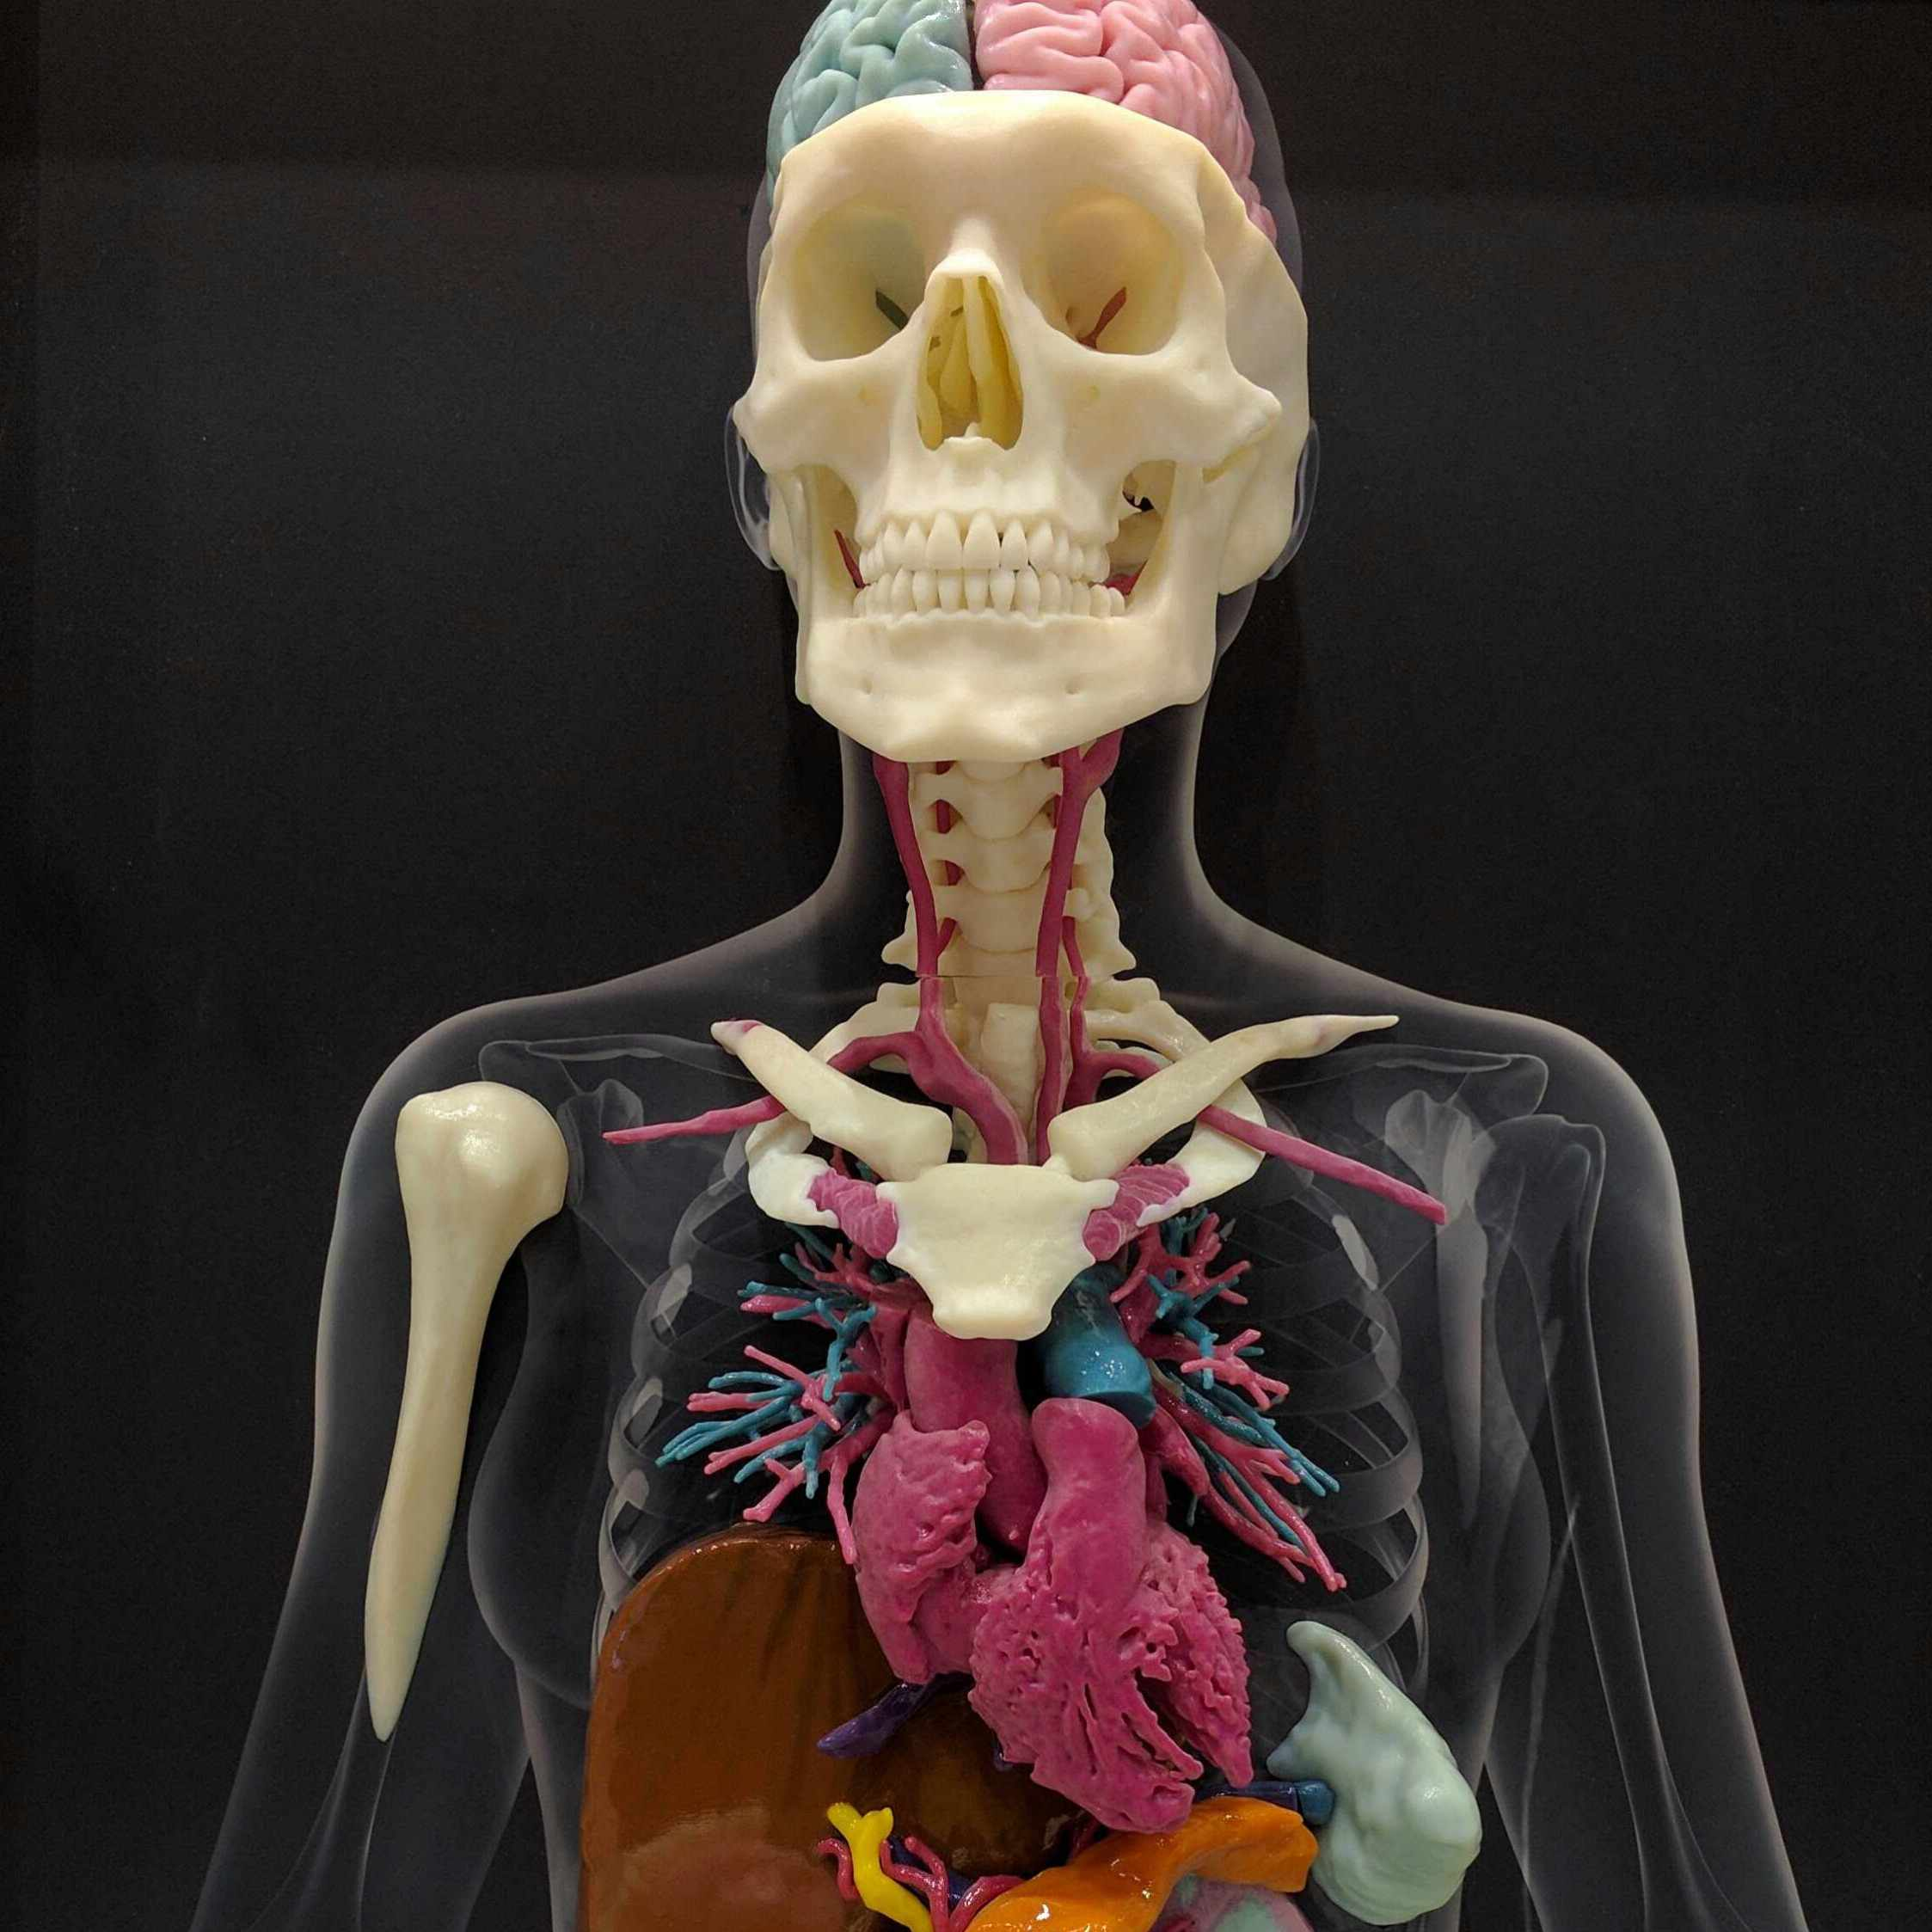 3d radiology model of human skeleton